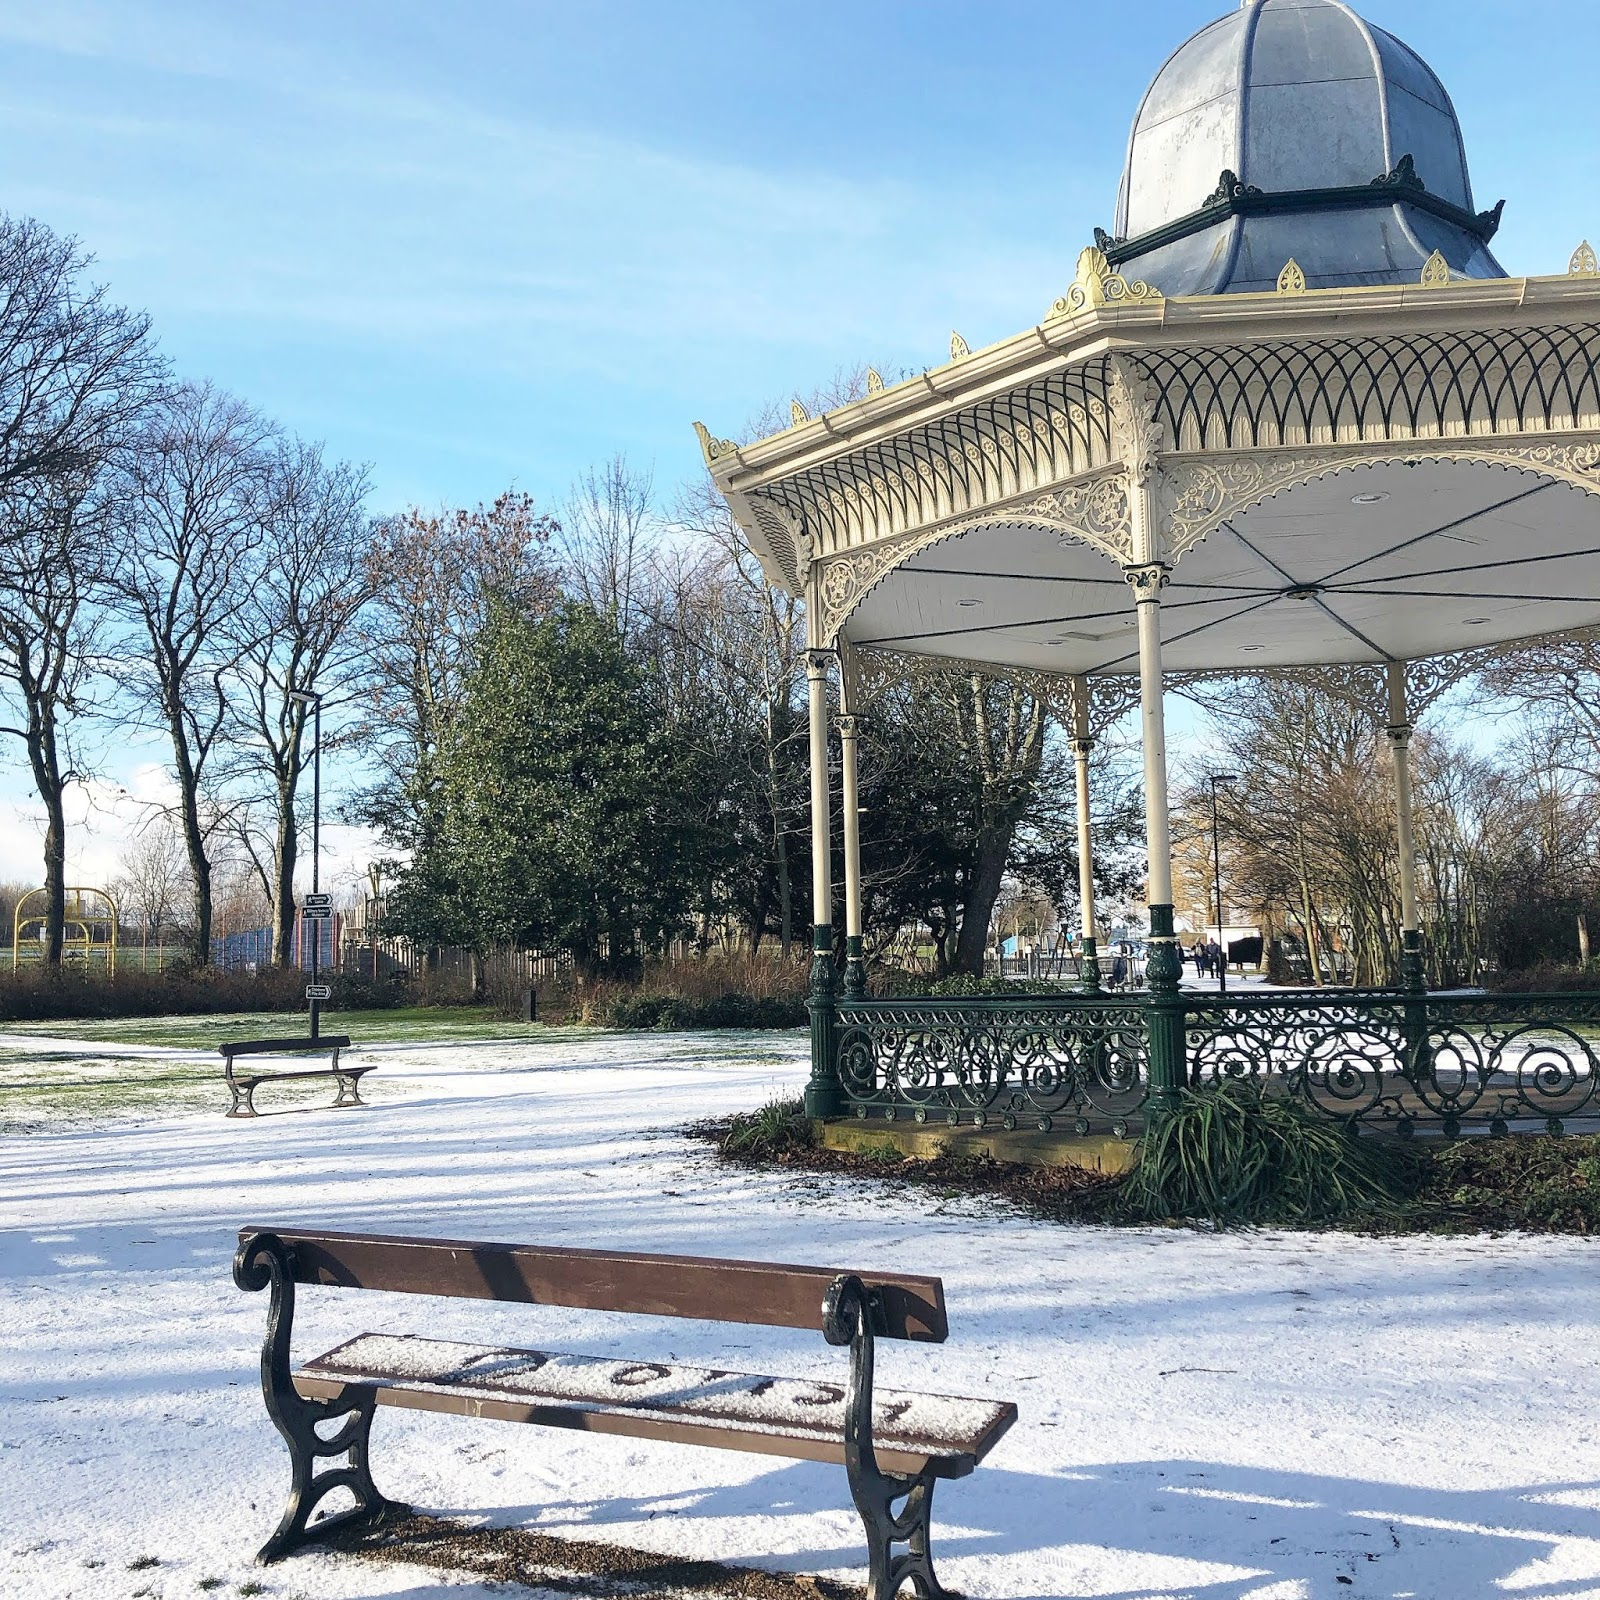 February Days - Snow in Newcastle